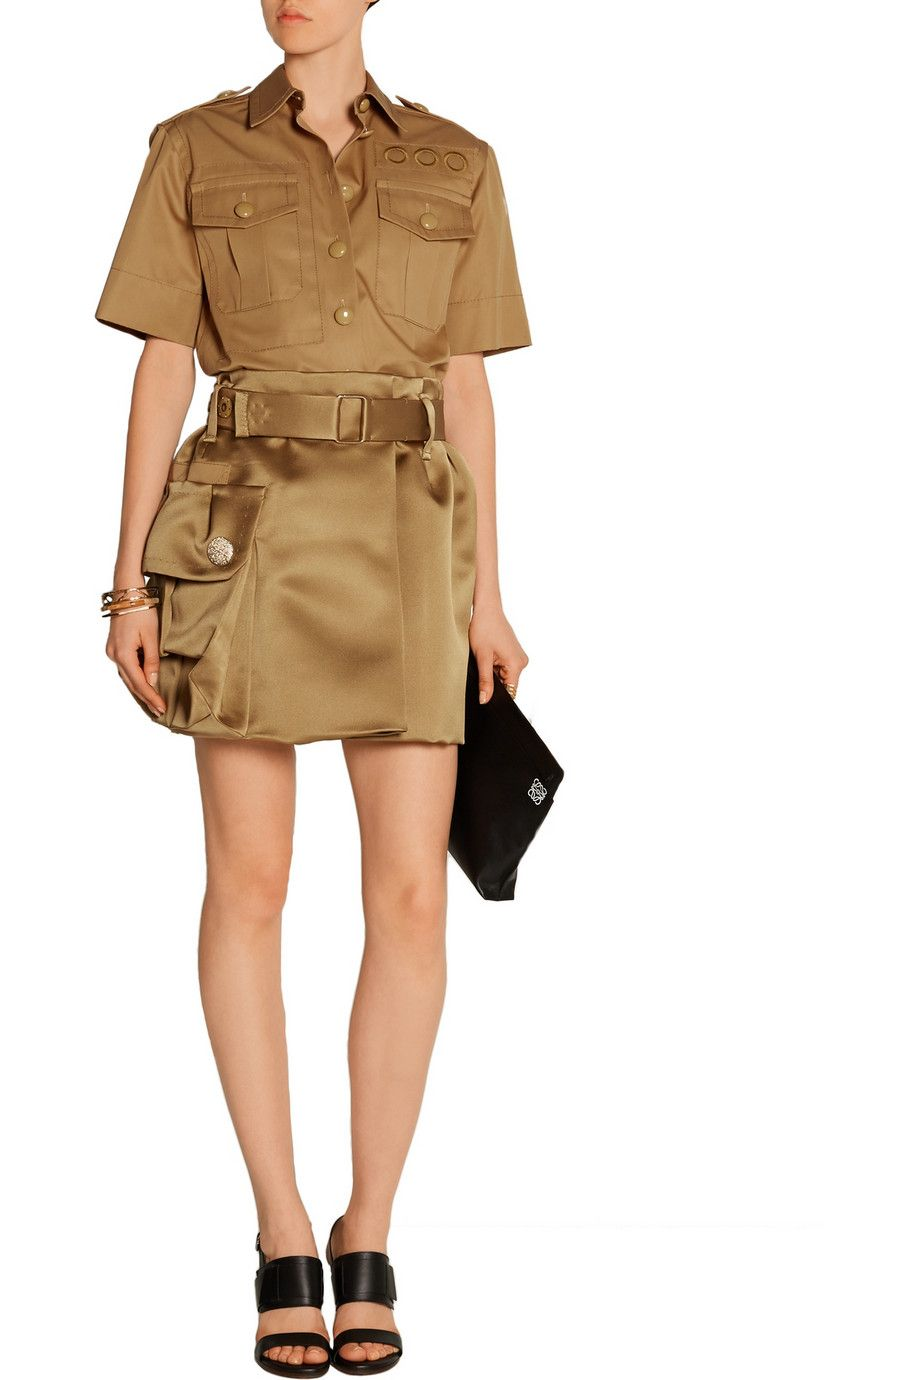 Marc Jacobs Belted silk satin twill mini skirt outfit, I'm like, VERY OBSESSED with this.